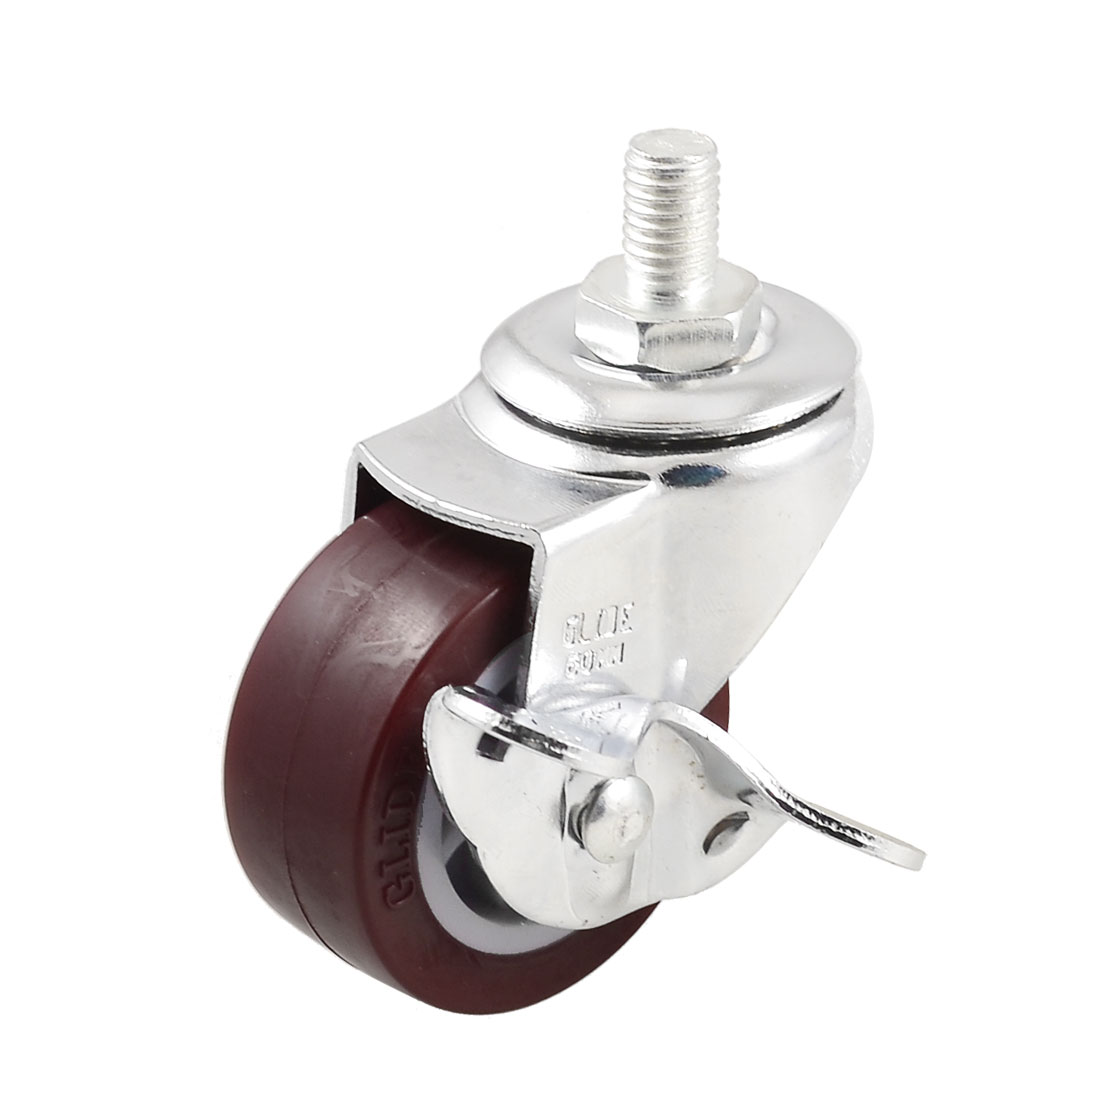 50mm Single Wheel 360 Degree Side Brake Threaded Stem Swivel Caster Burgundy